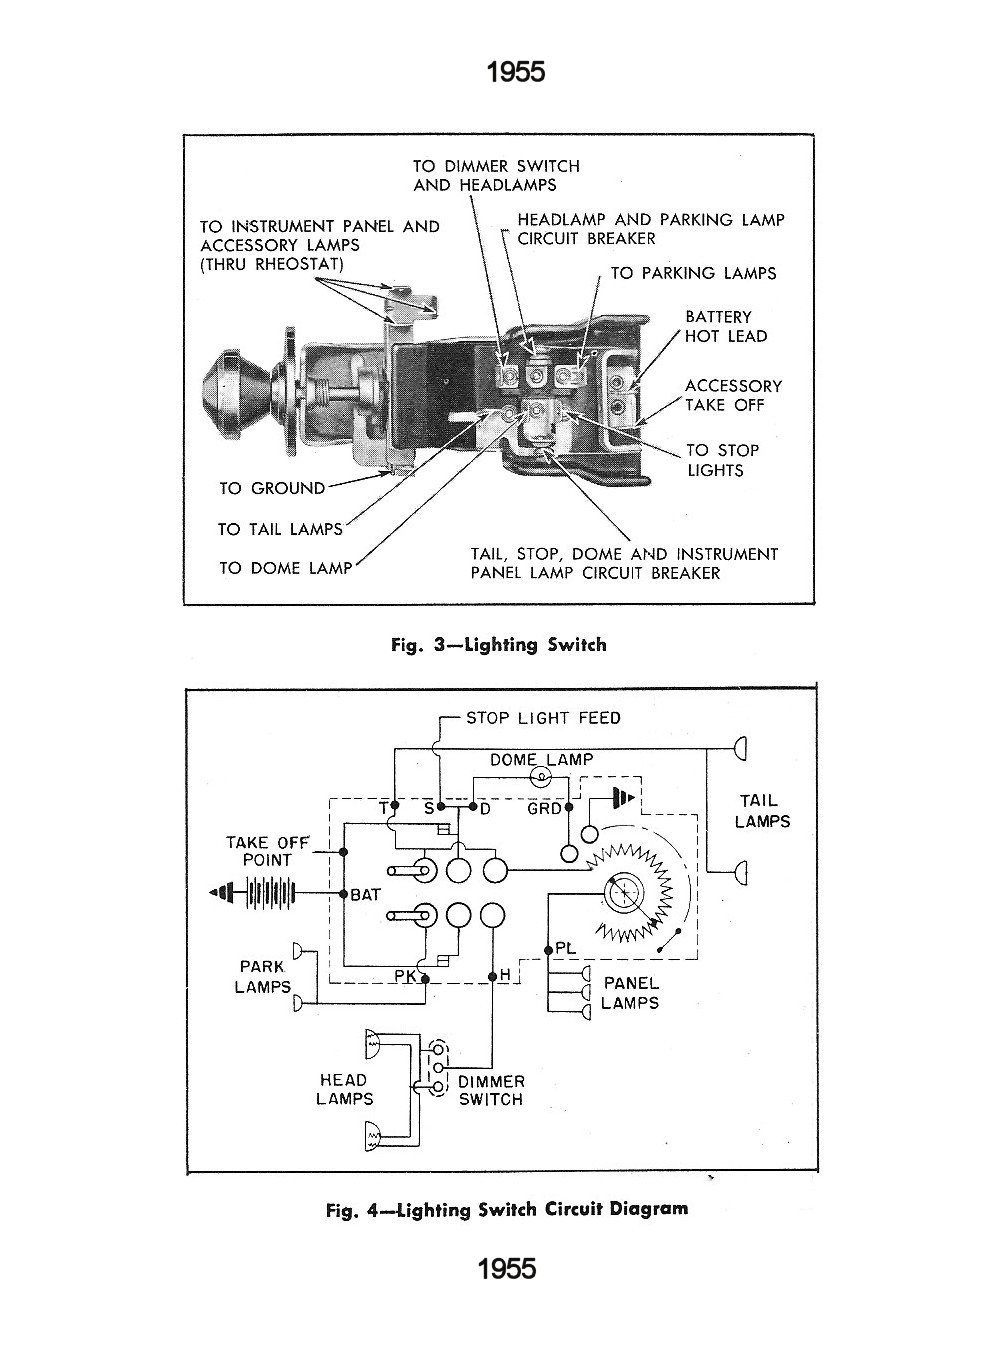 55csm1204a chevy wiring diagrams 55 chevy bel air wiring diagram at eliteediting.co